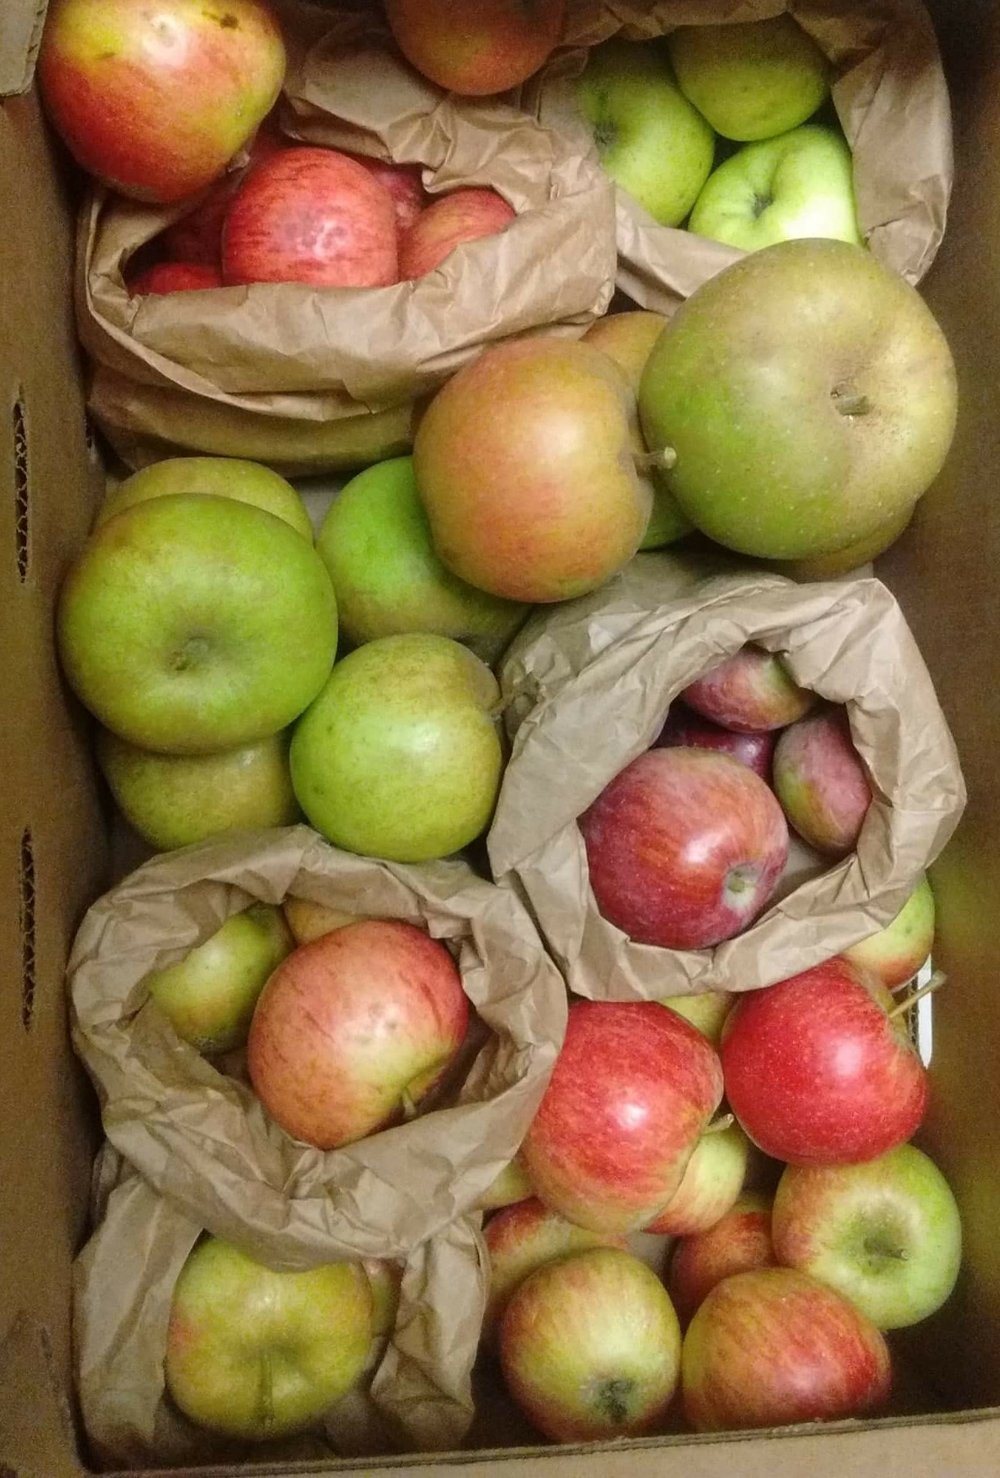 JOIN AN APPLE CSA - DISCOVER YOUR NEW FAVORITE OREGON APPLE FLAVORS